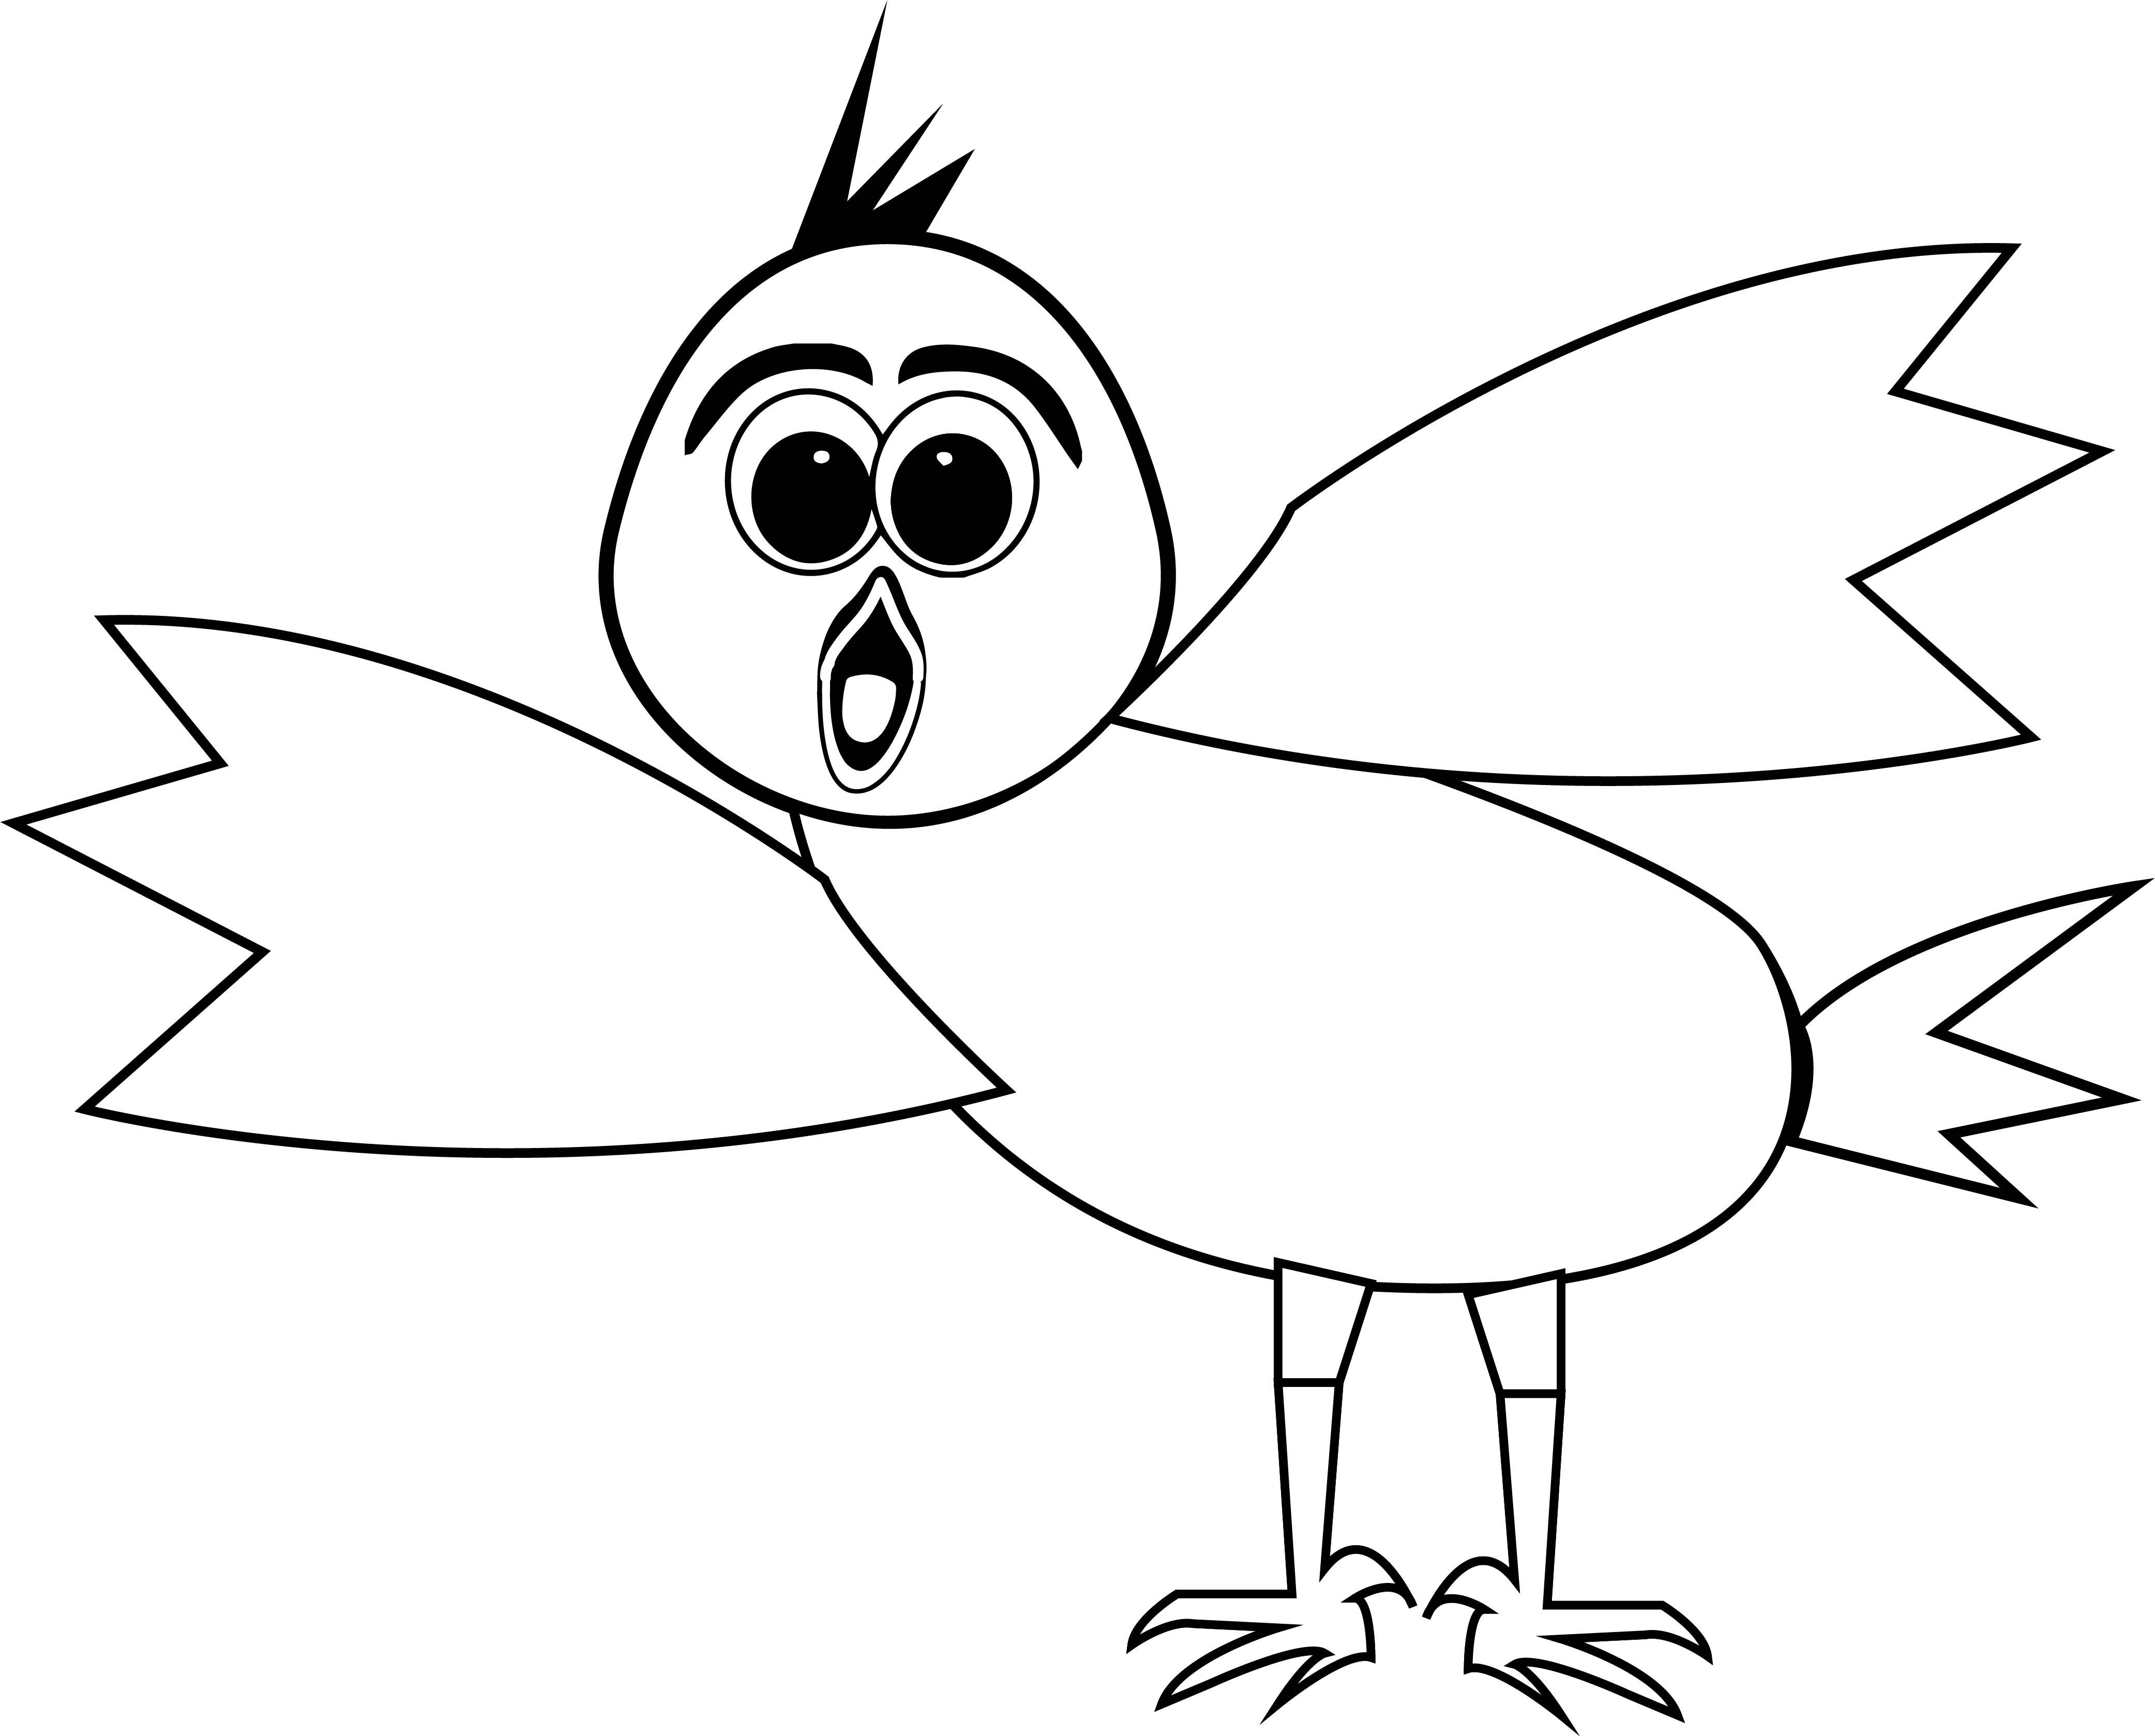 What This Bird Coloring Page